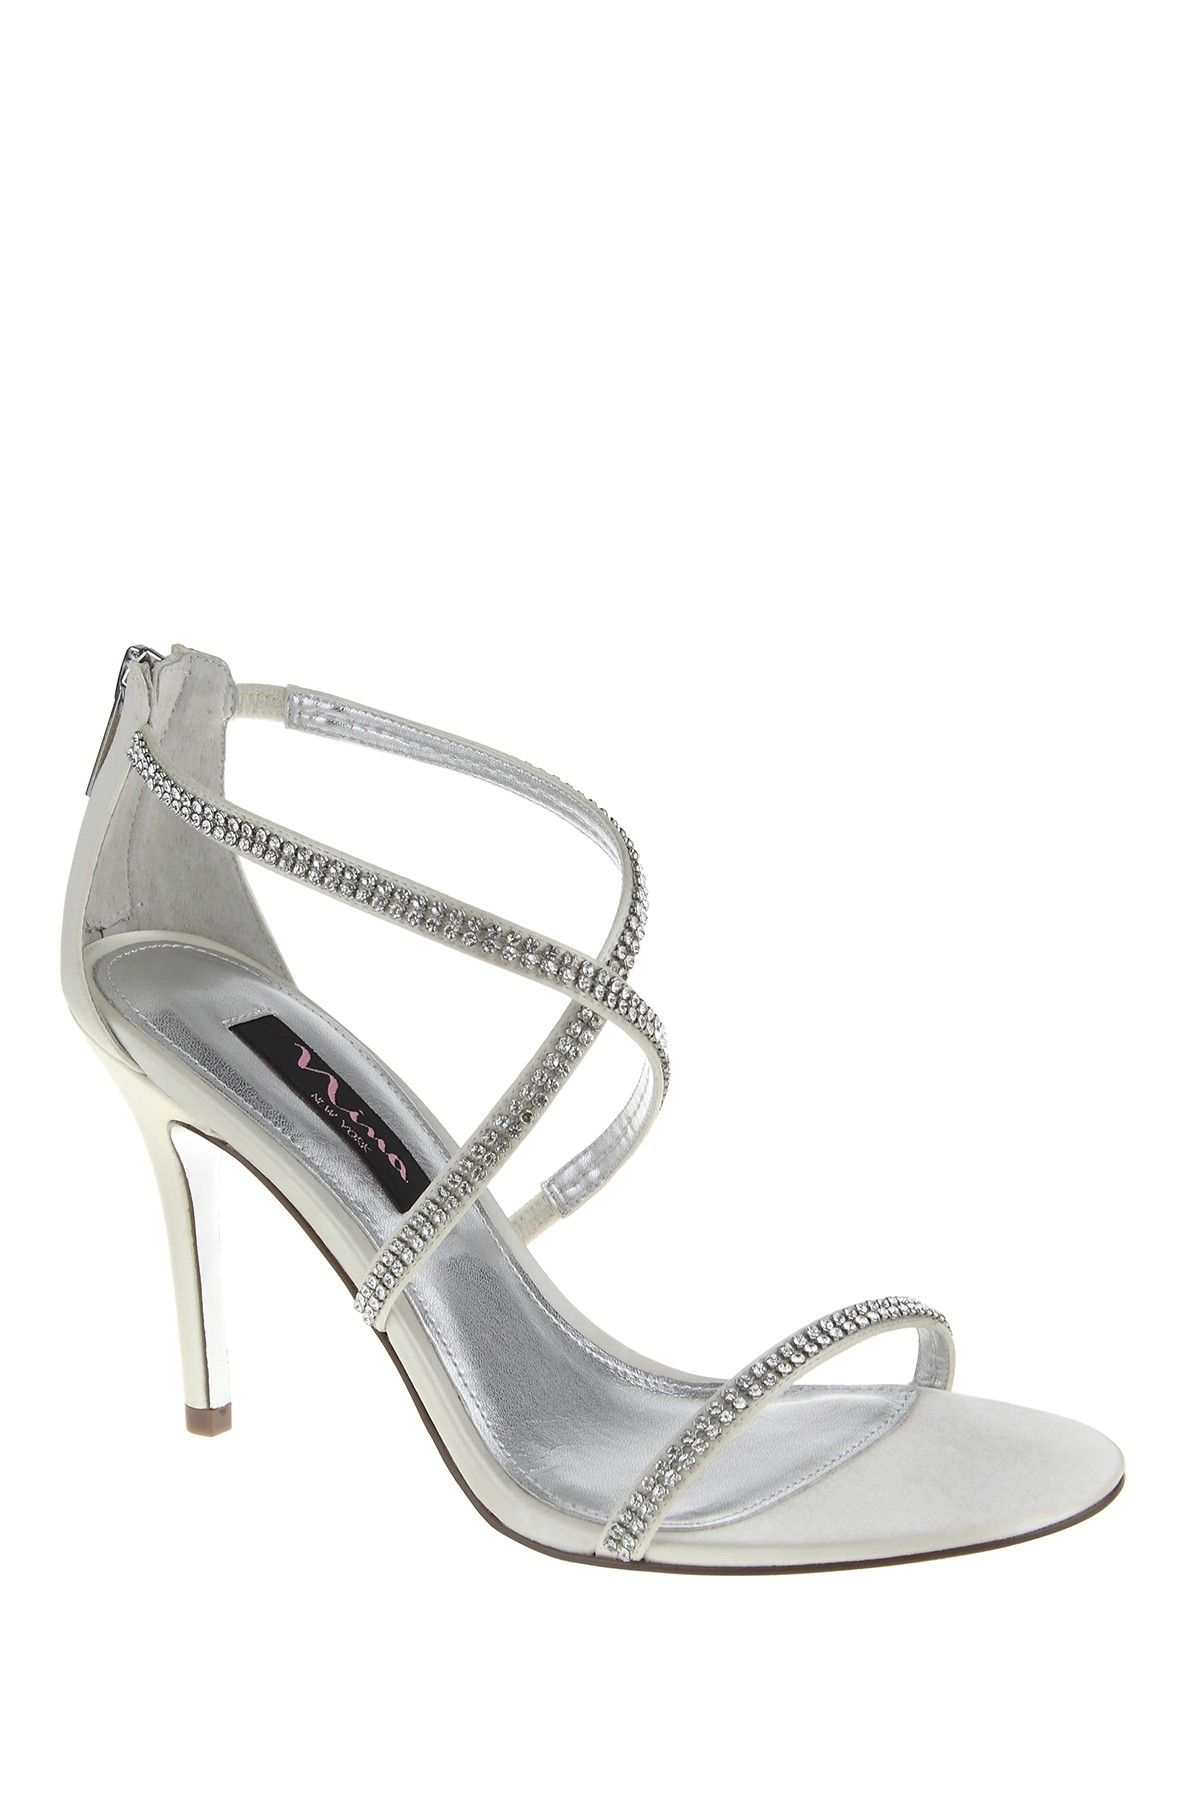 a709bfd0cd9f Silver Dress Sandals. The perfect wedding shoe.